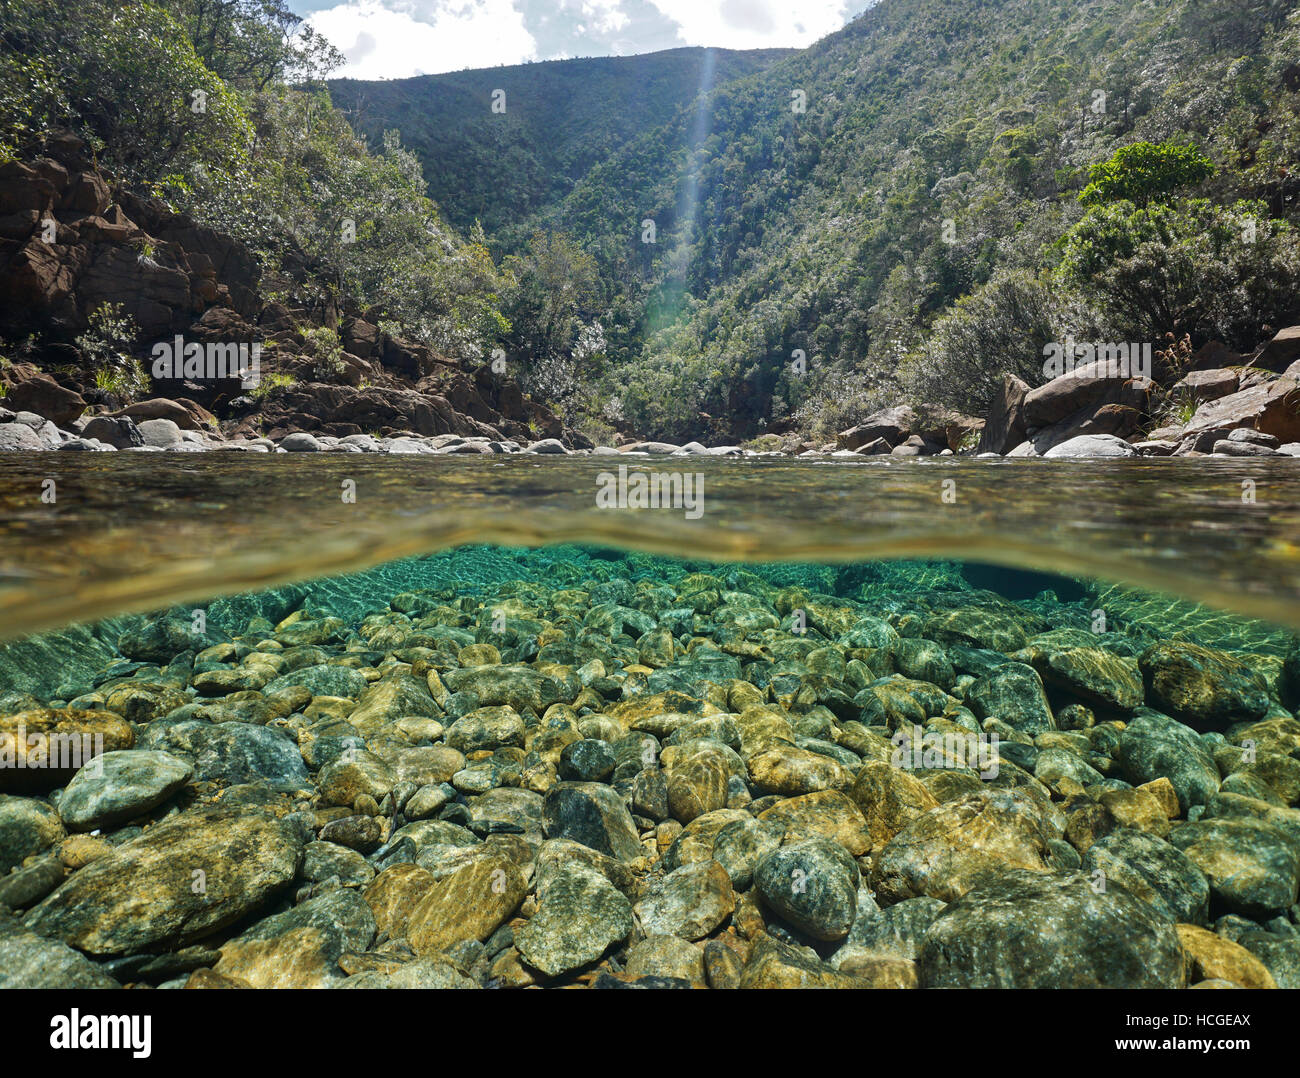 River Above And Below Water Surface With Rocks On The Riverbed Underwater,  Dumbea River,